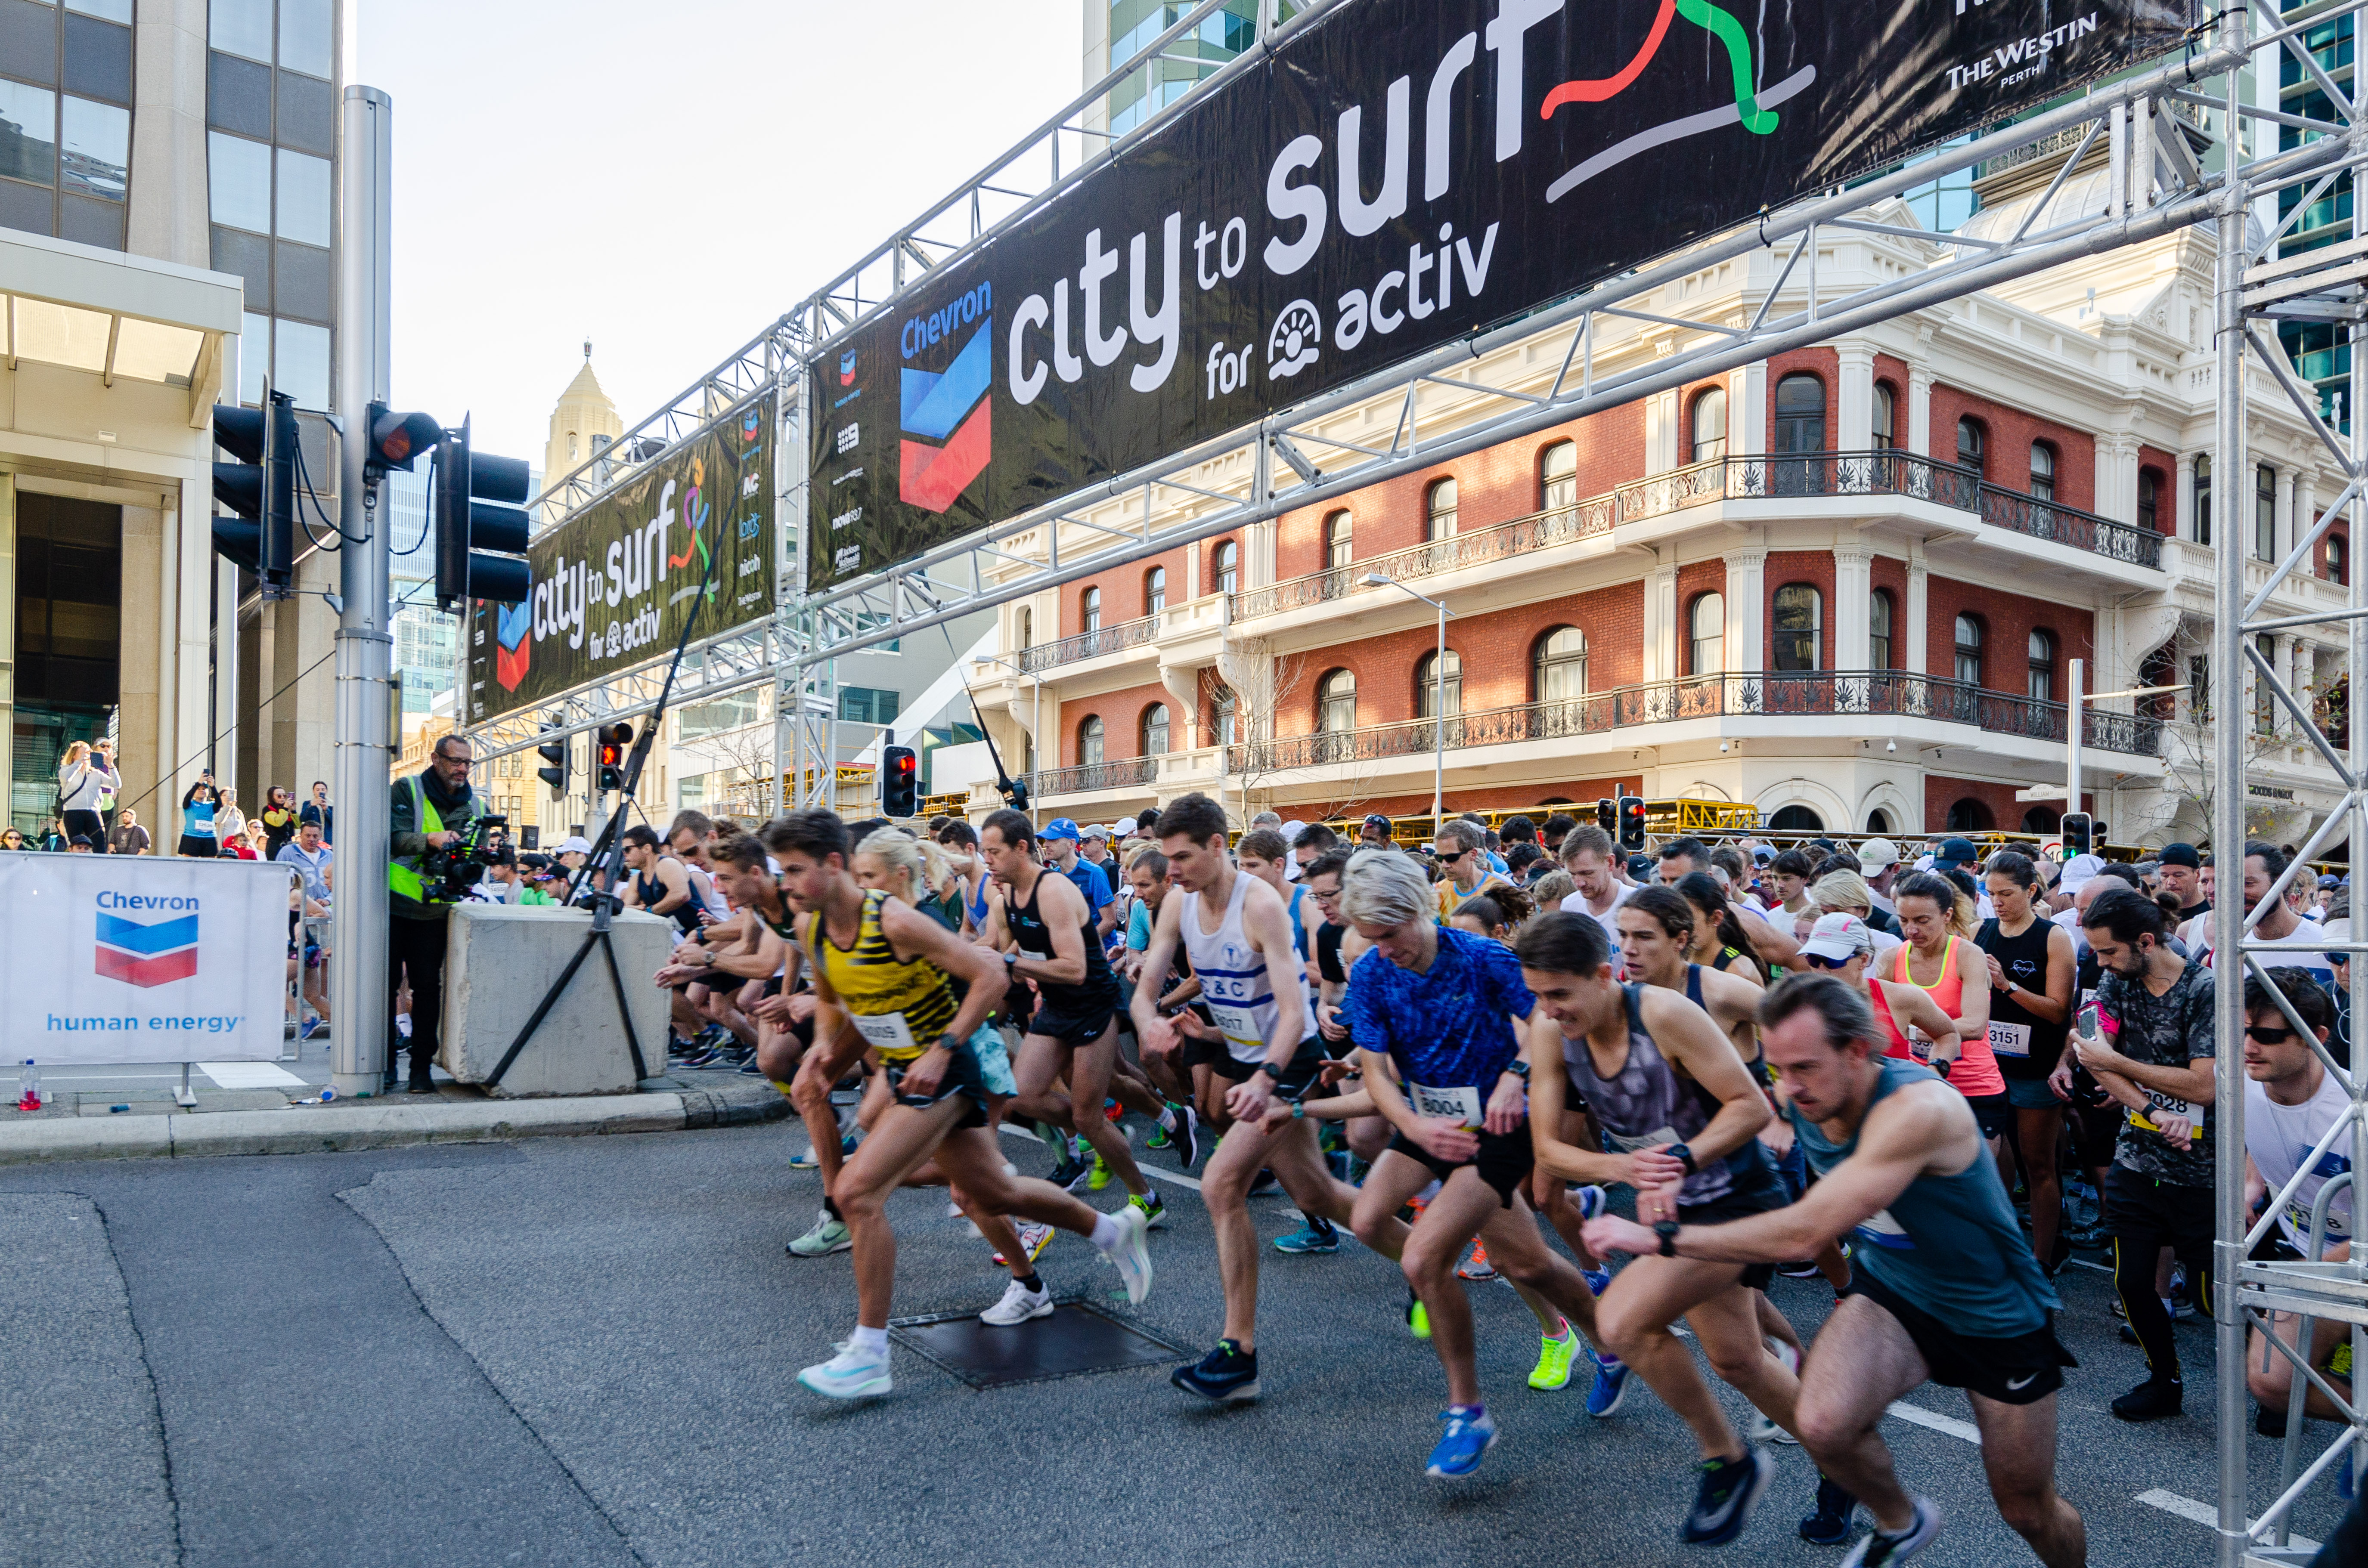 2021 Chevron City to Surf for Activ cancelled